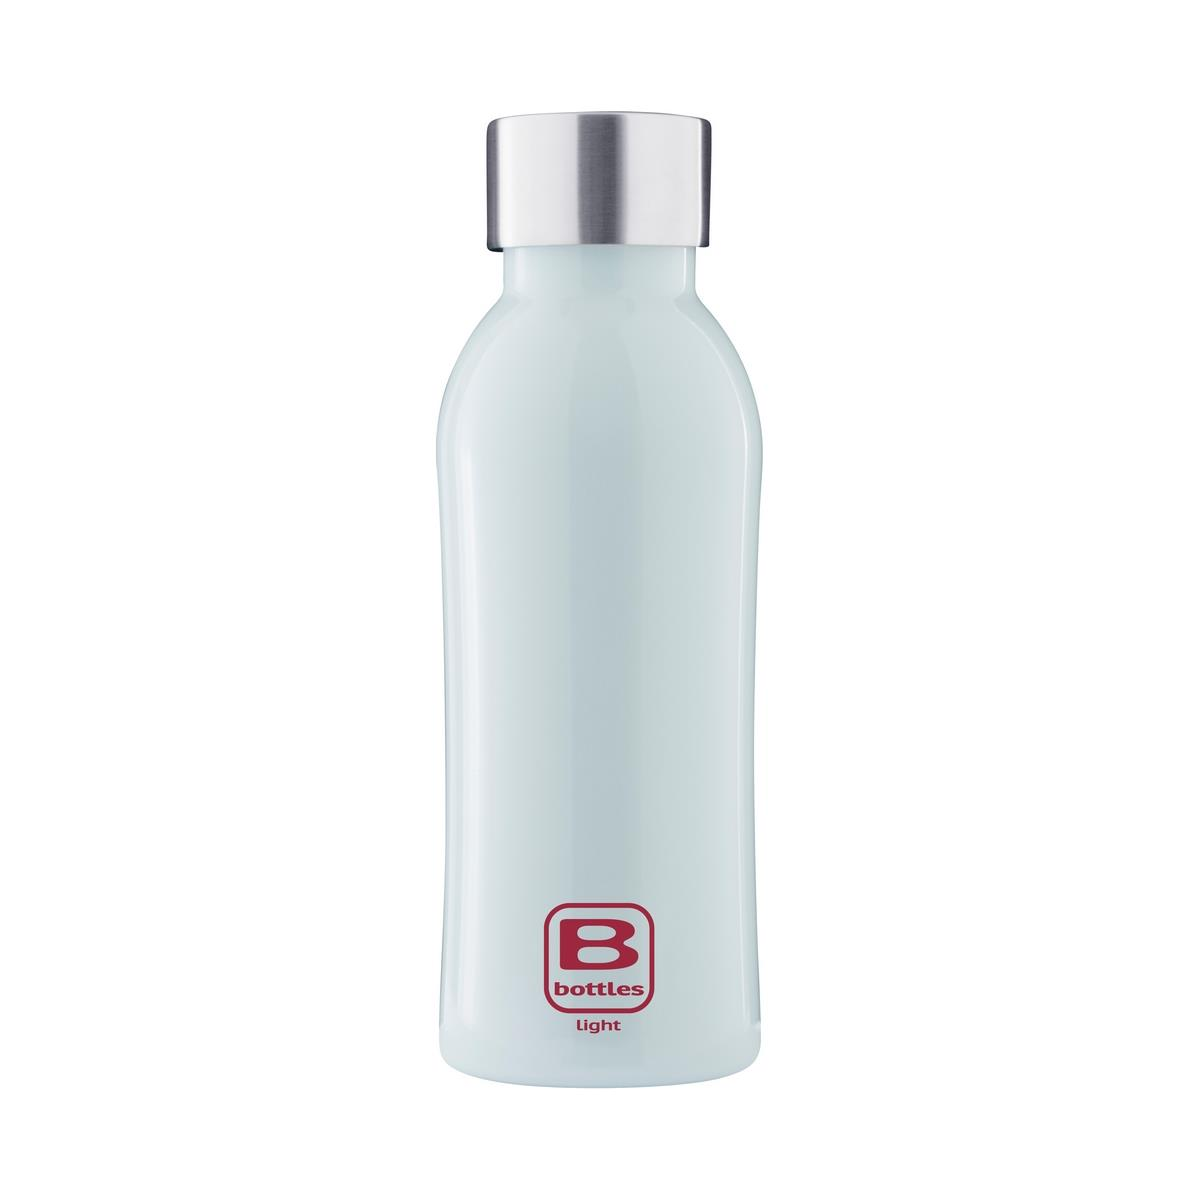 photo B Bottles Light - Light Blue - 530 ml - Bottiglia in acciaio inox 18/10 ultra leggera e compatta